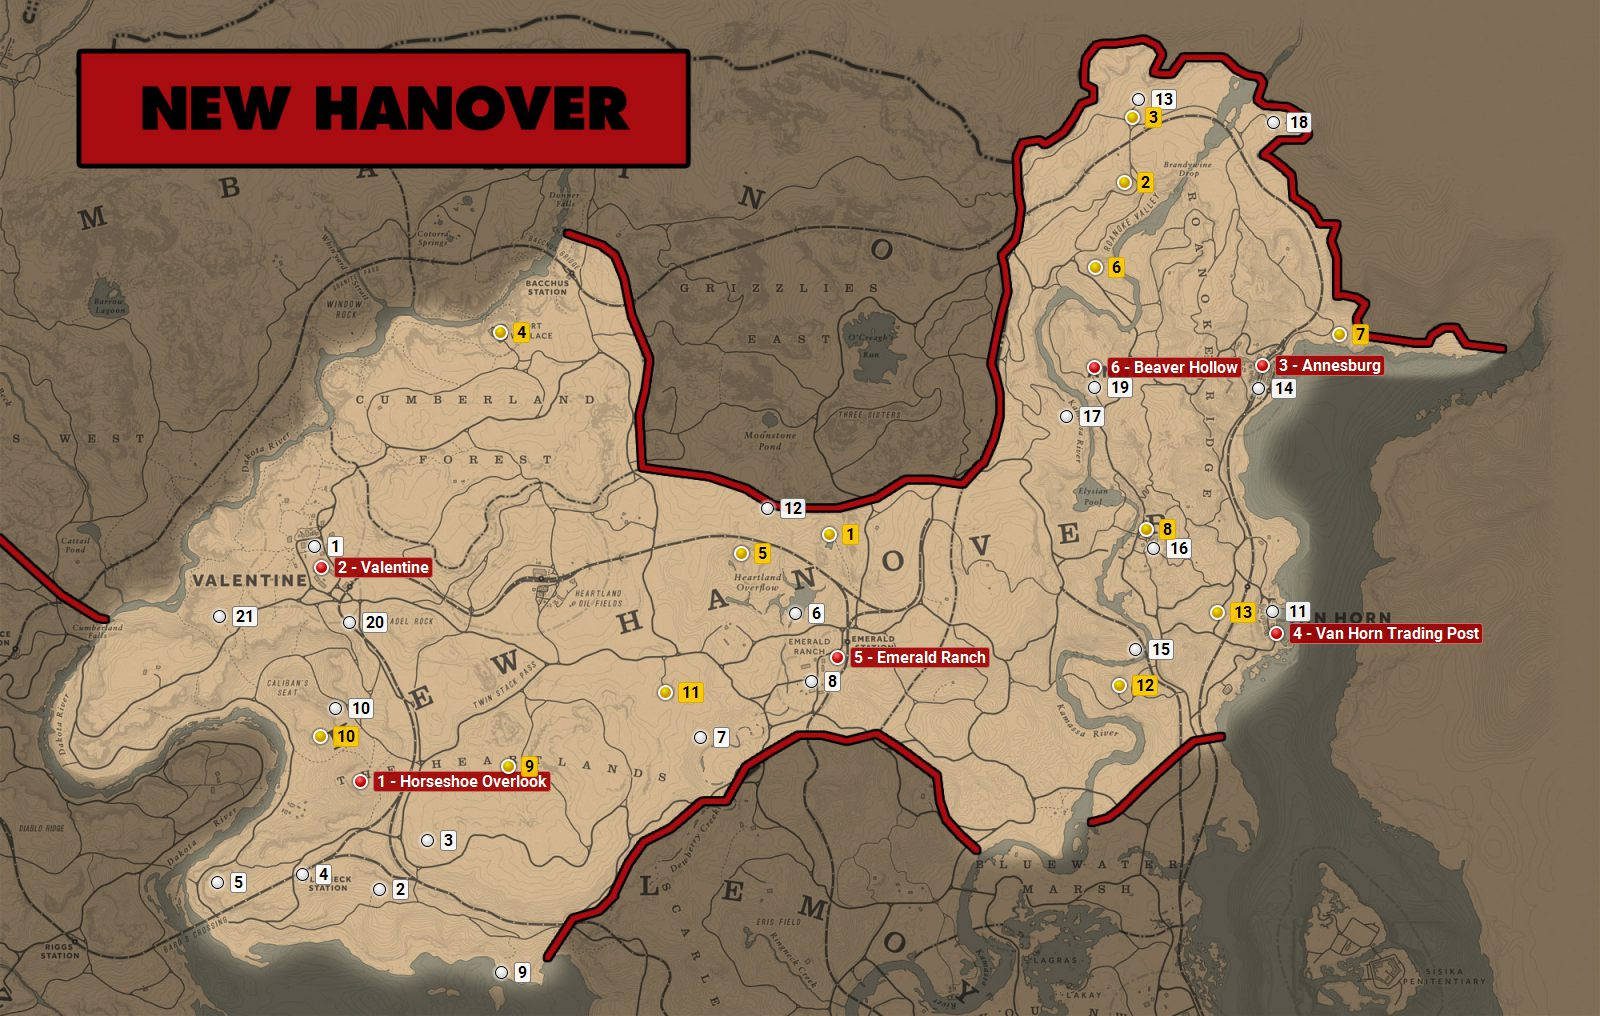 Red Dead 2 World Map.New Hanover Red Dead Redemption 2 World Atlas Map Red Dead